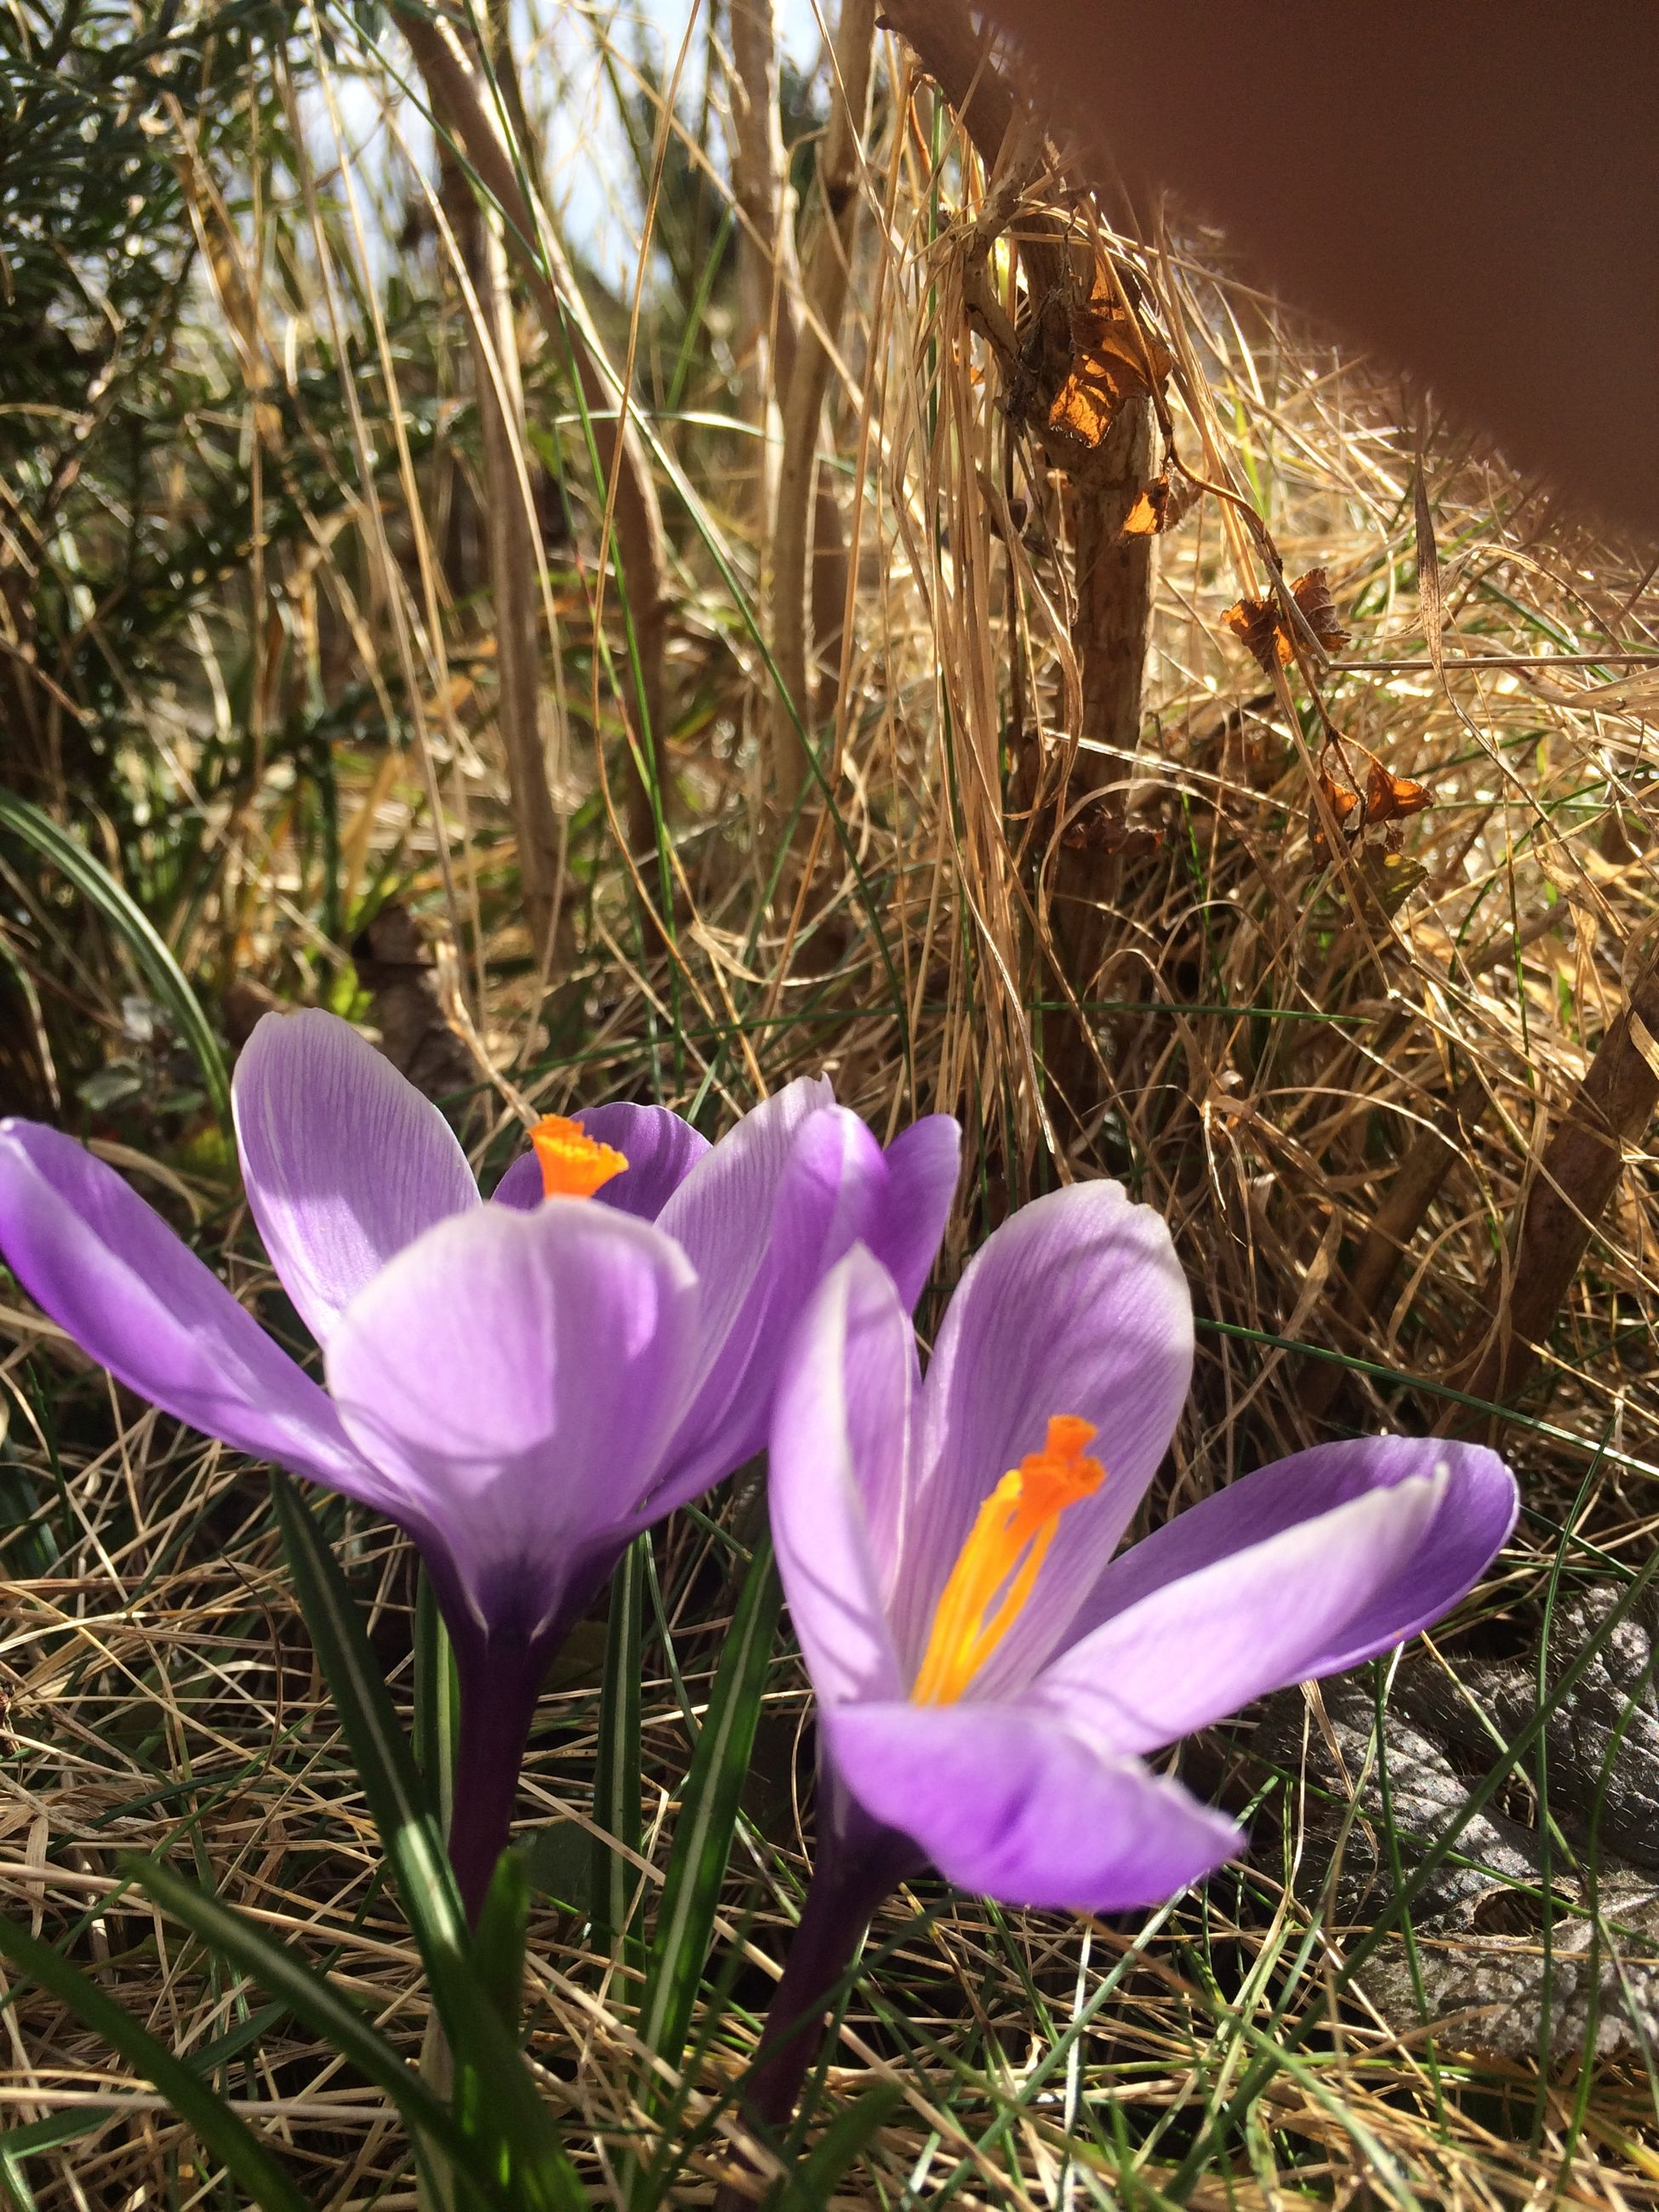 flower, petal, purple, fragility, freshness, flower head, growth, blooming, plant, beauty in nature, nature, high angle view, close-up, single flower, field, crocus, in bloom, grass, pollen, focus on foreground